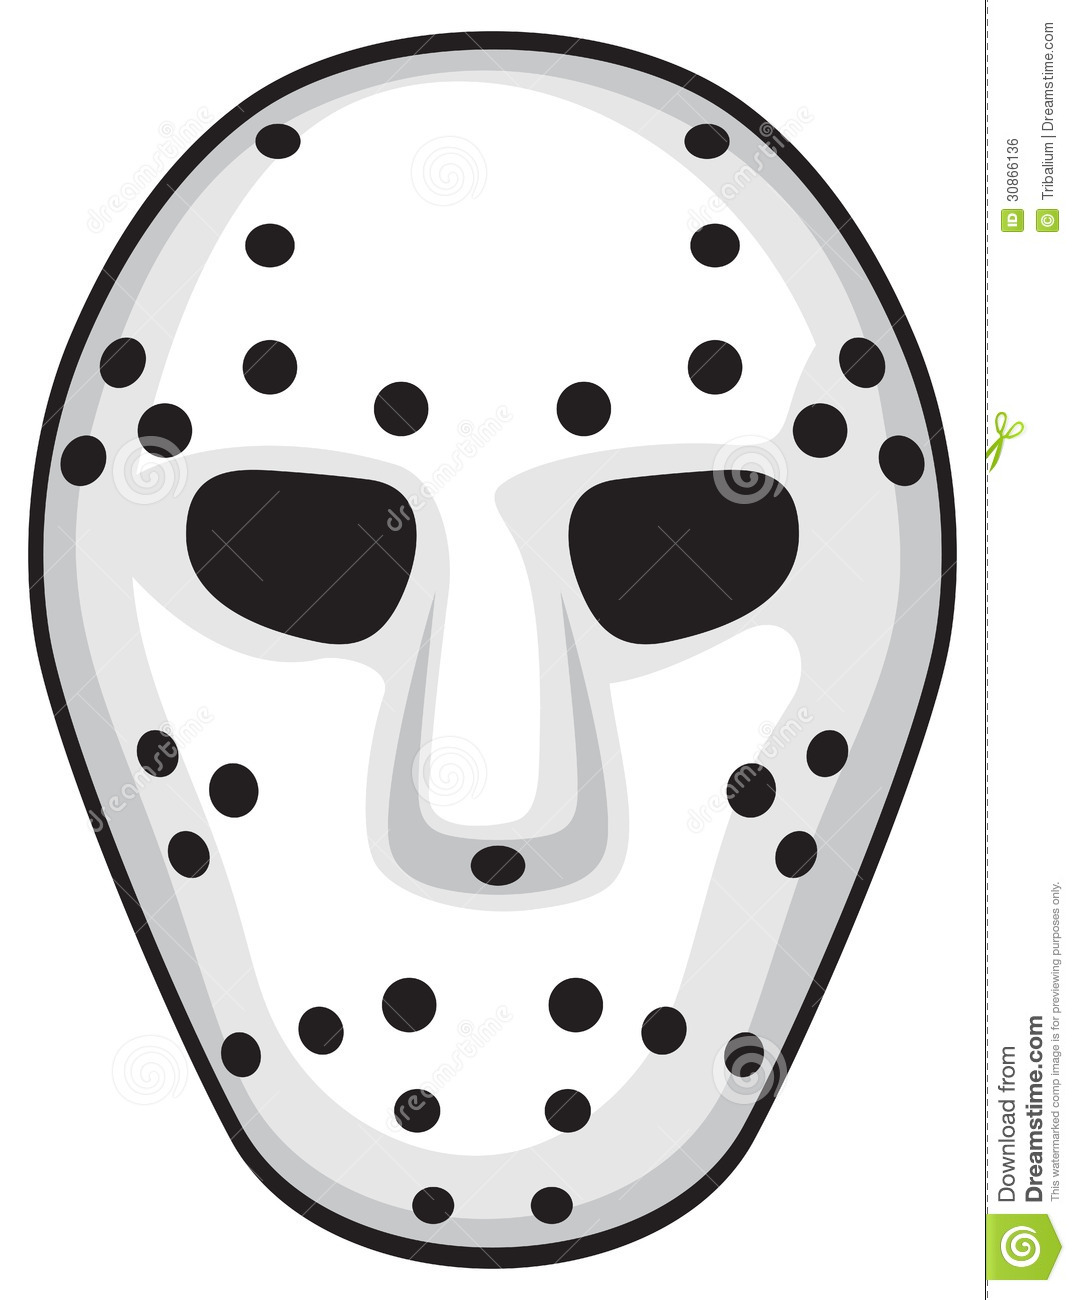 Hockey Mask Royalty Free Stock Image - Image: 30866136